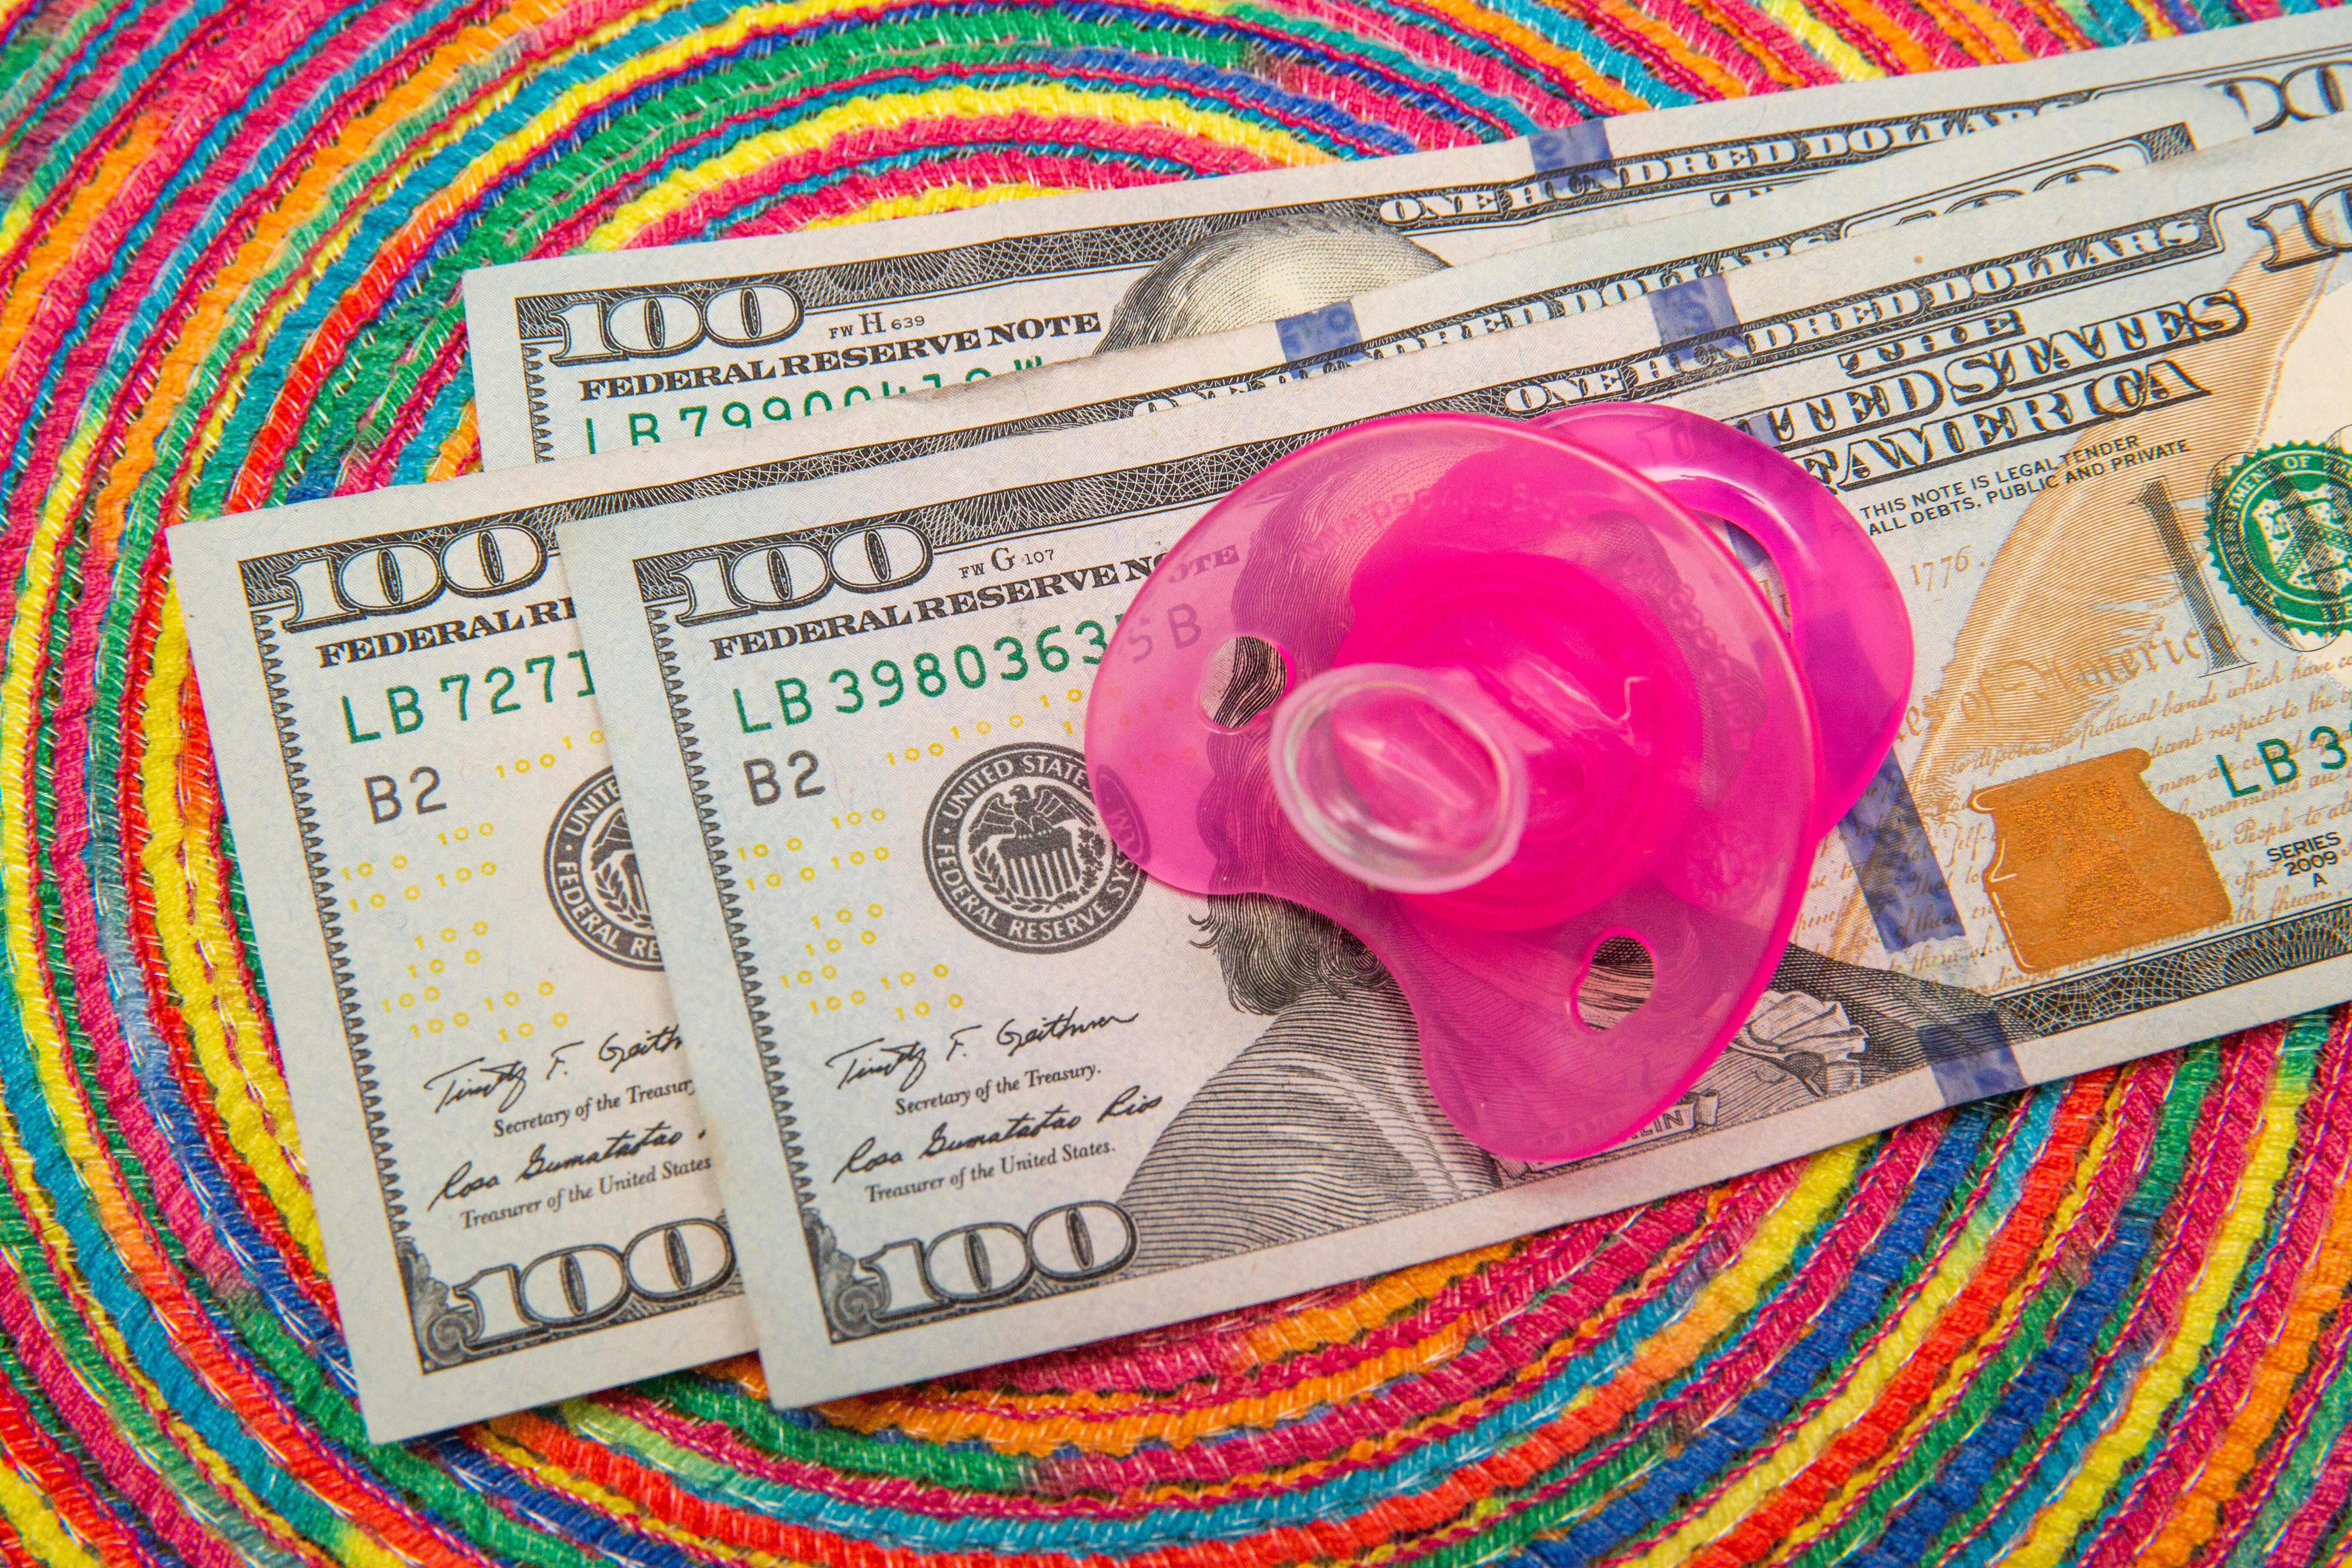 008-cash-stimulus-child-tax-credit-3600-calculator-cnet-2021-2020-federal-government-money-baby-family-pacifier-sippy